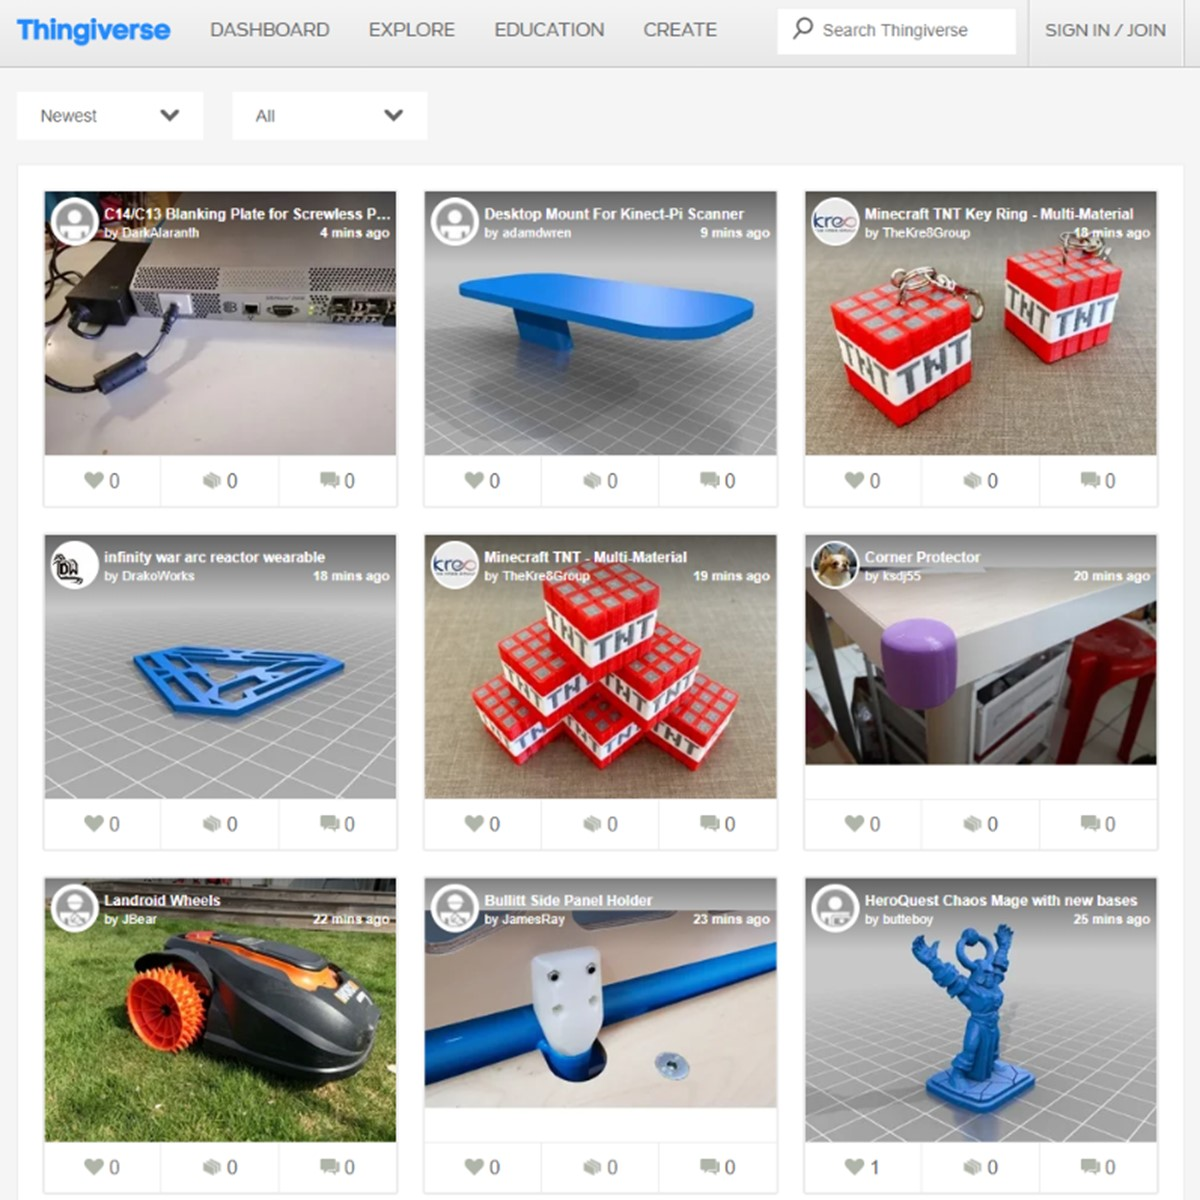 Thingiverse Alternatives and Similar Websites and Apps